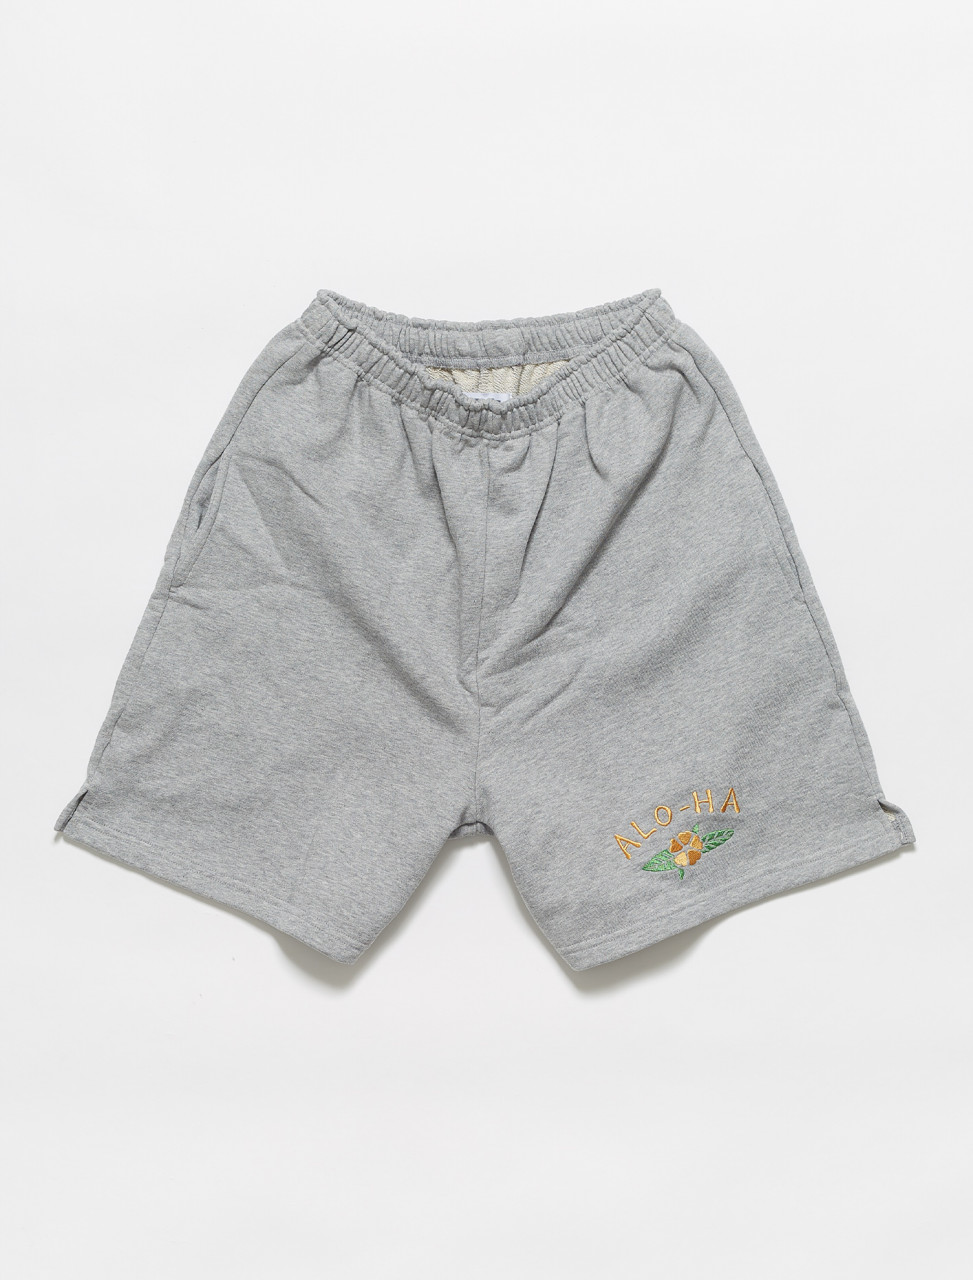 317-SSAJ-SP-17 ART OF SCRIBBLE ALOHA SHORT GREY MELANGE